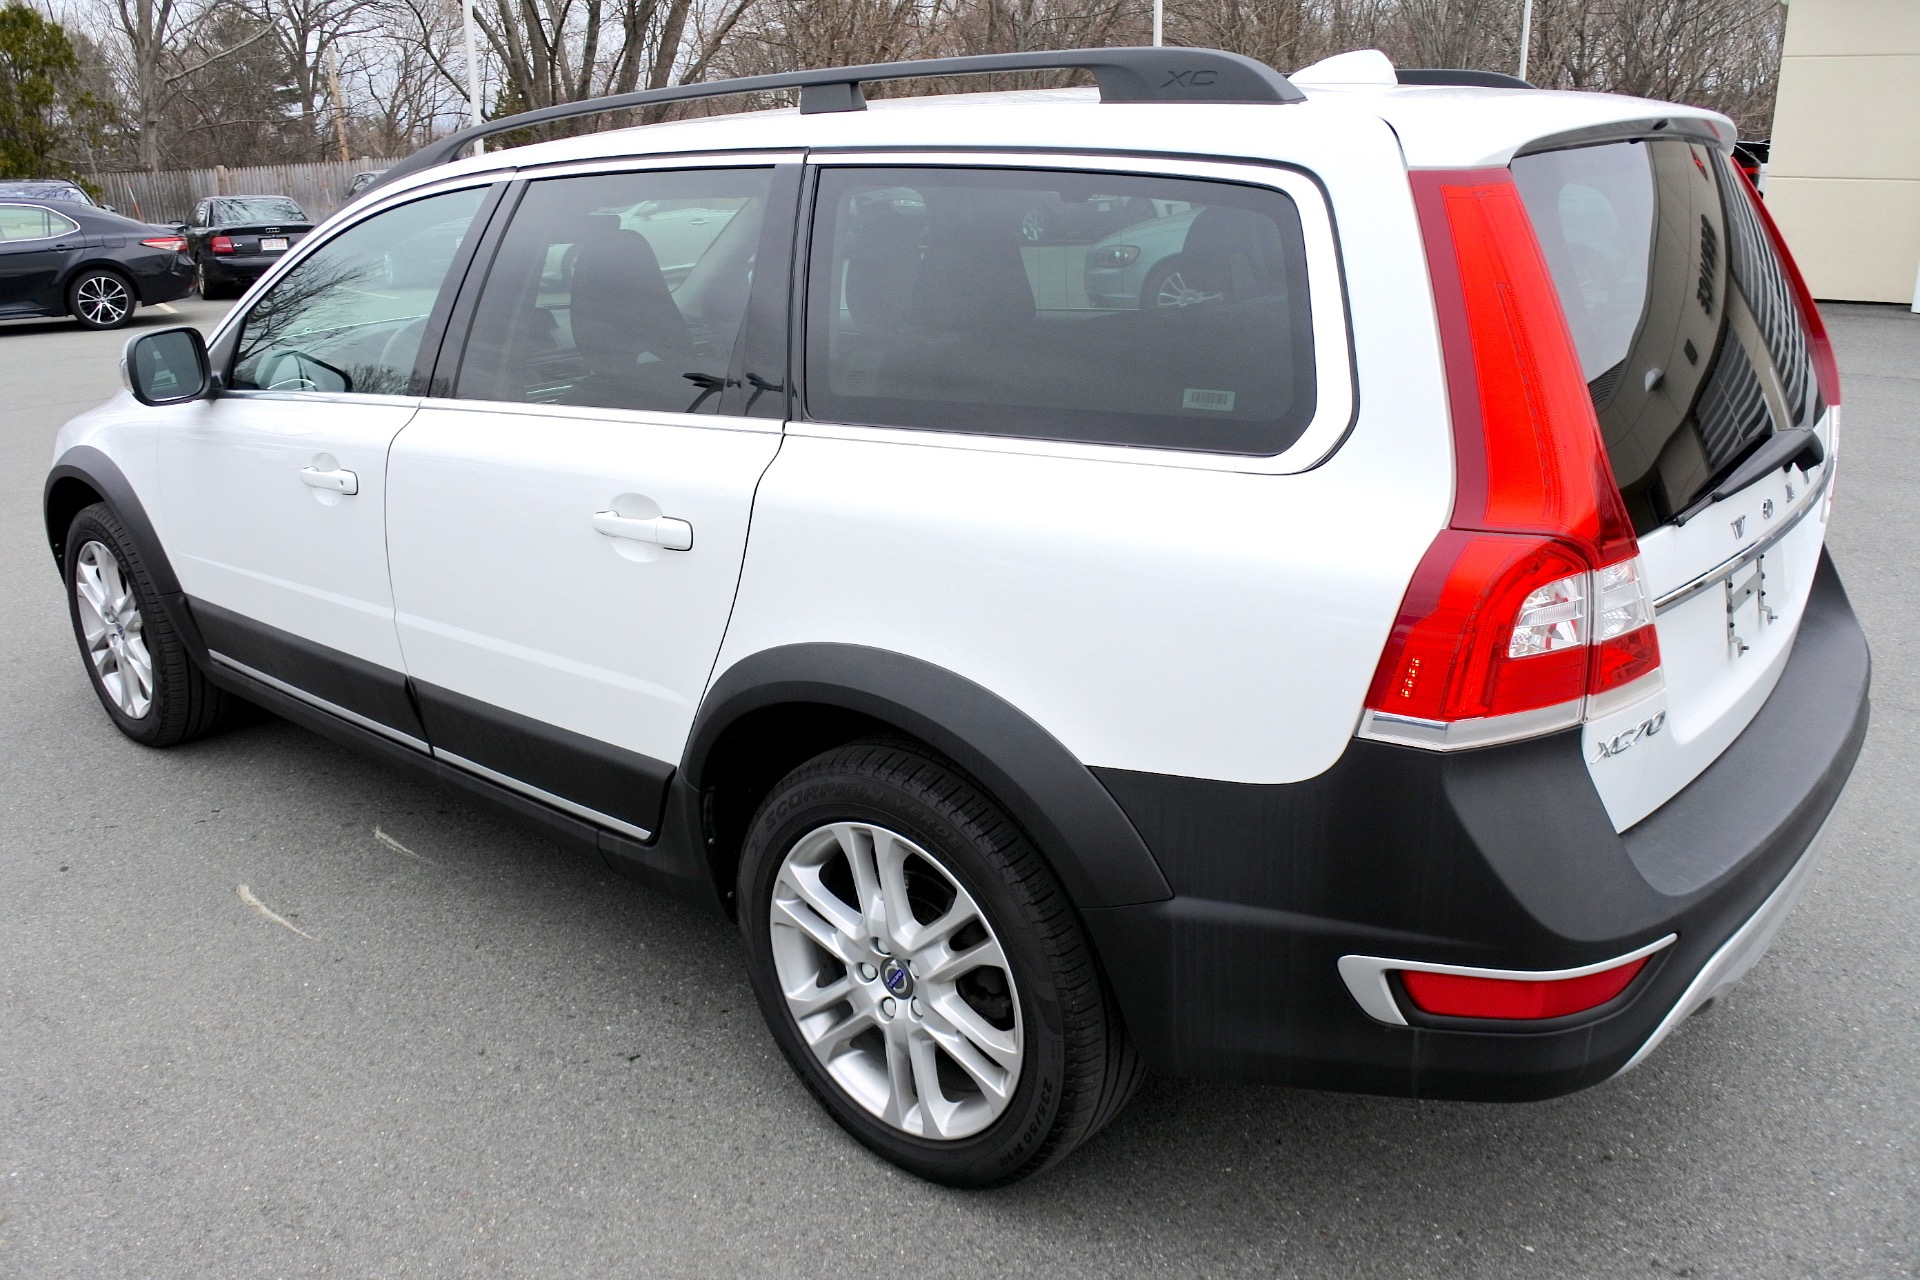 Used 2016 Volvo Xc70 T5 Premier AWD Used 2016 Volvo Xc70 T5 Premier AWD for sale  at Metro West Motorcars LLC in Shrewsbury MA 3